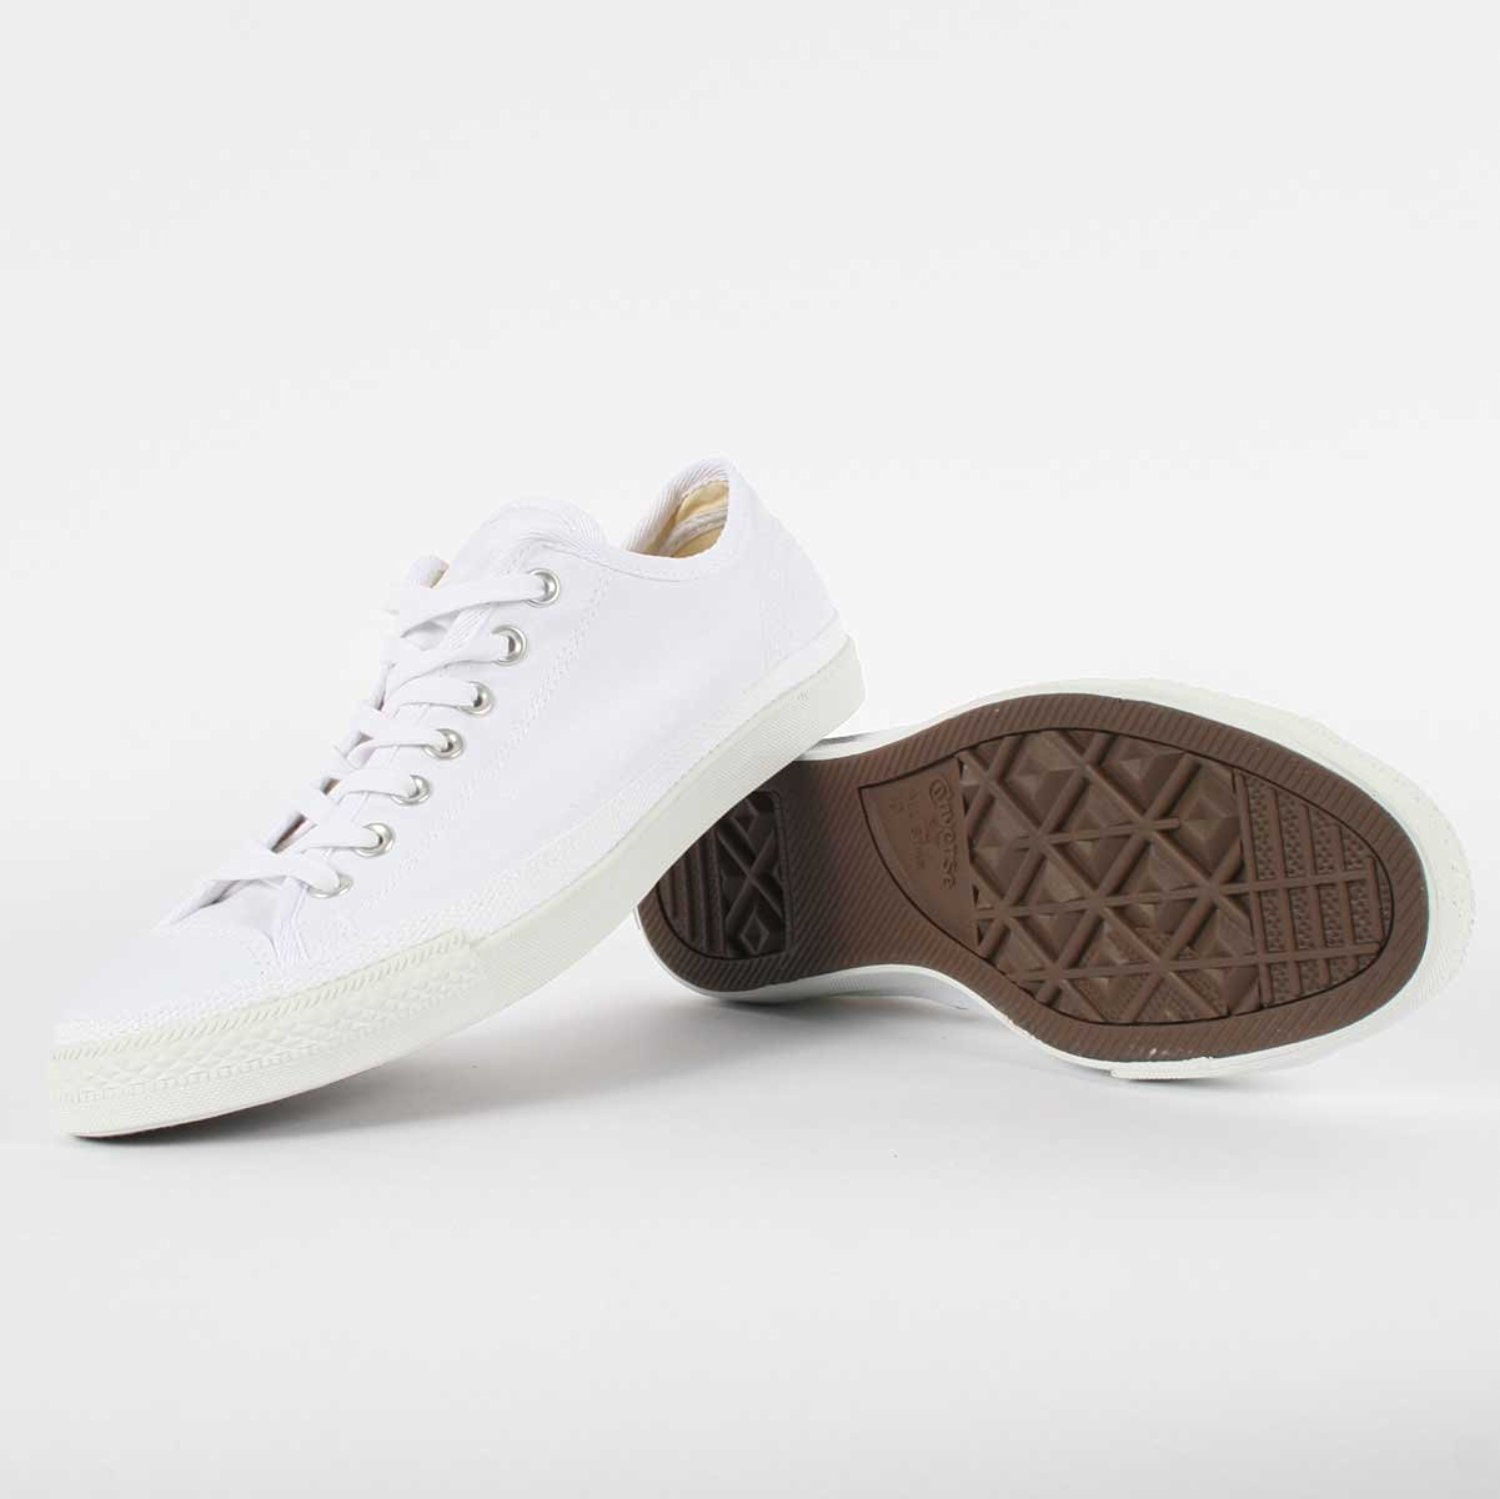 995a0e3c8b94 Get Quotations · Converse Chuck Taylor All Star Low - White